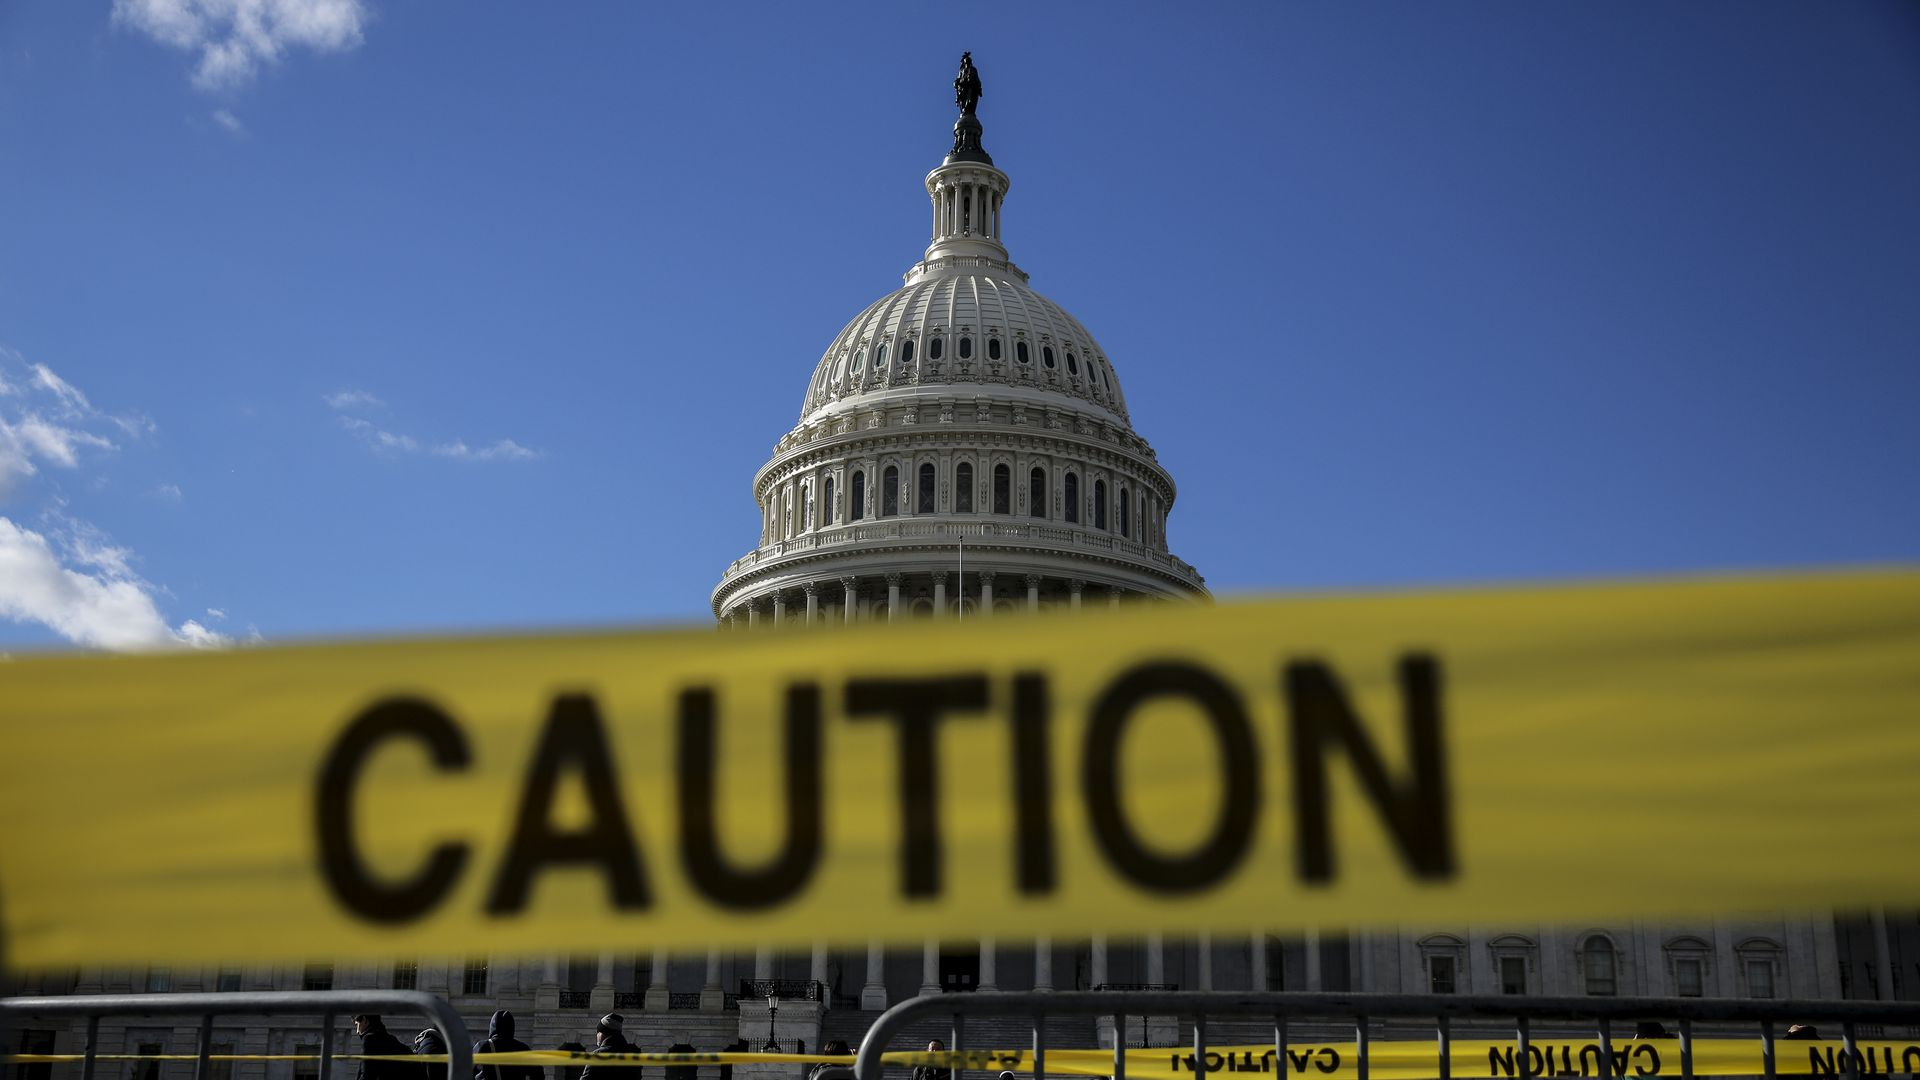 Capitol Hill with caution tape near entrances